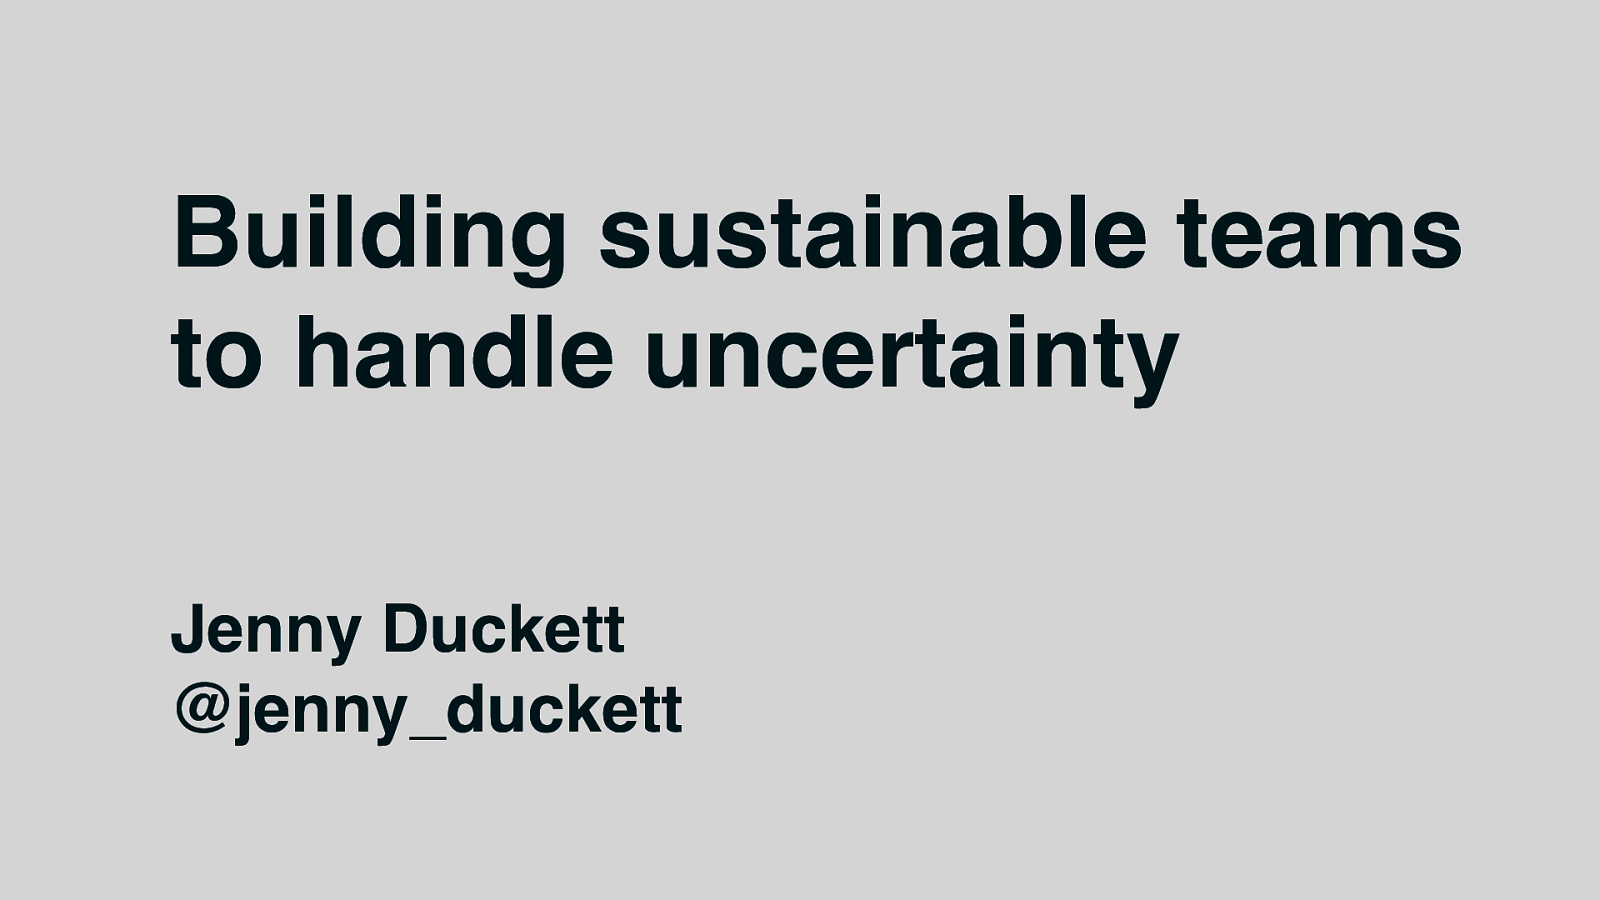 Building sustainable teams to handle uncertainty